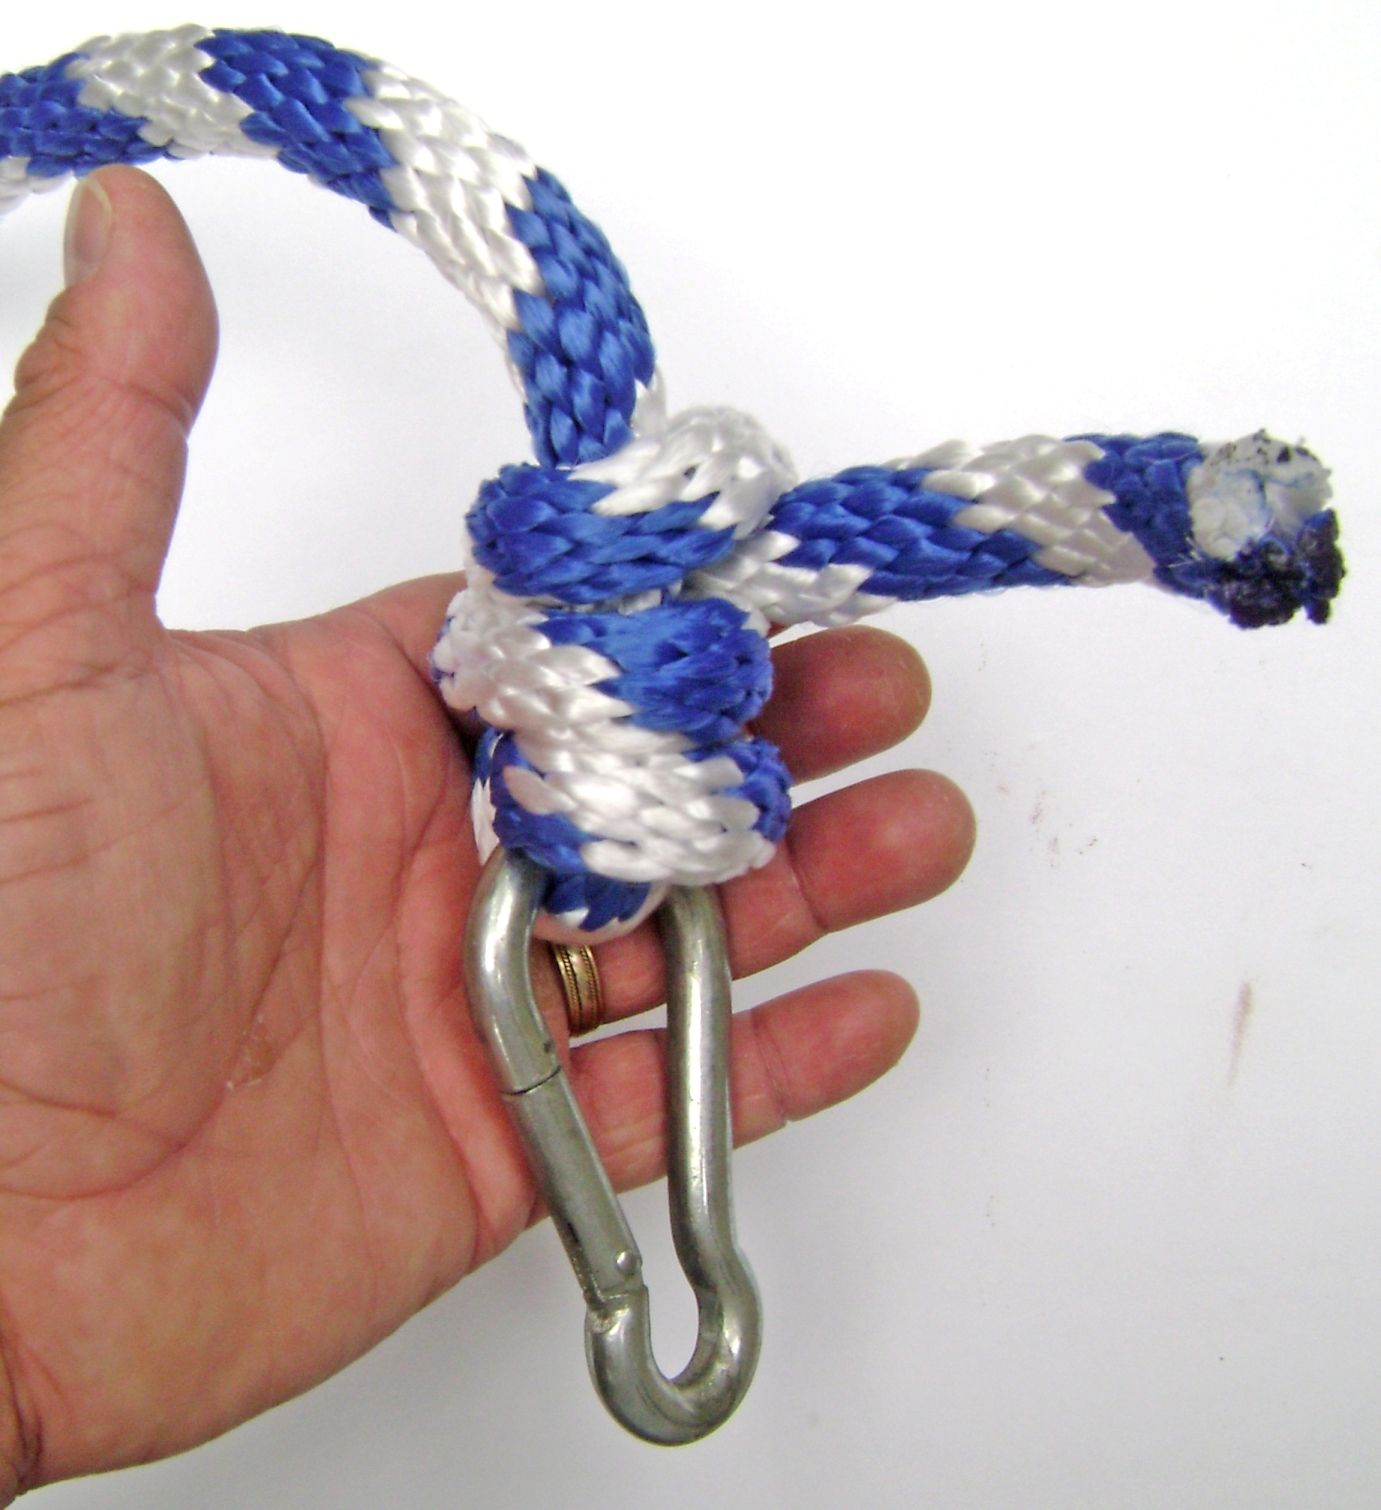 Step By Step Instructions With Photos For How To Tie A